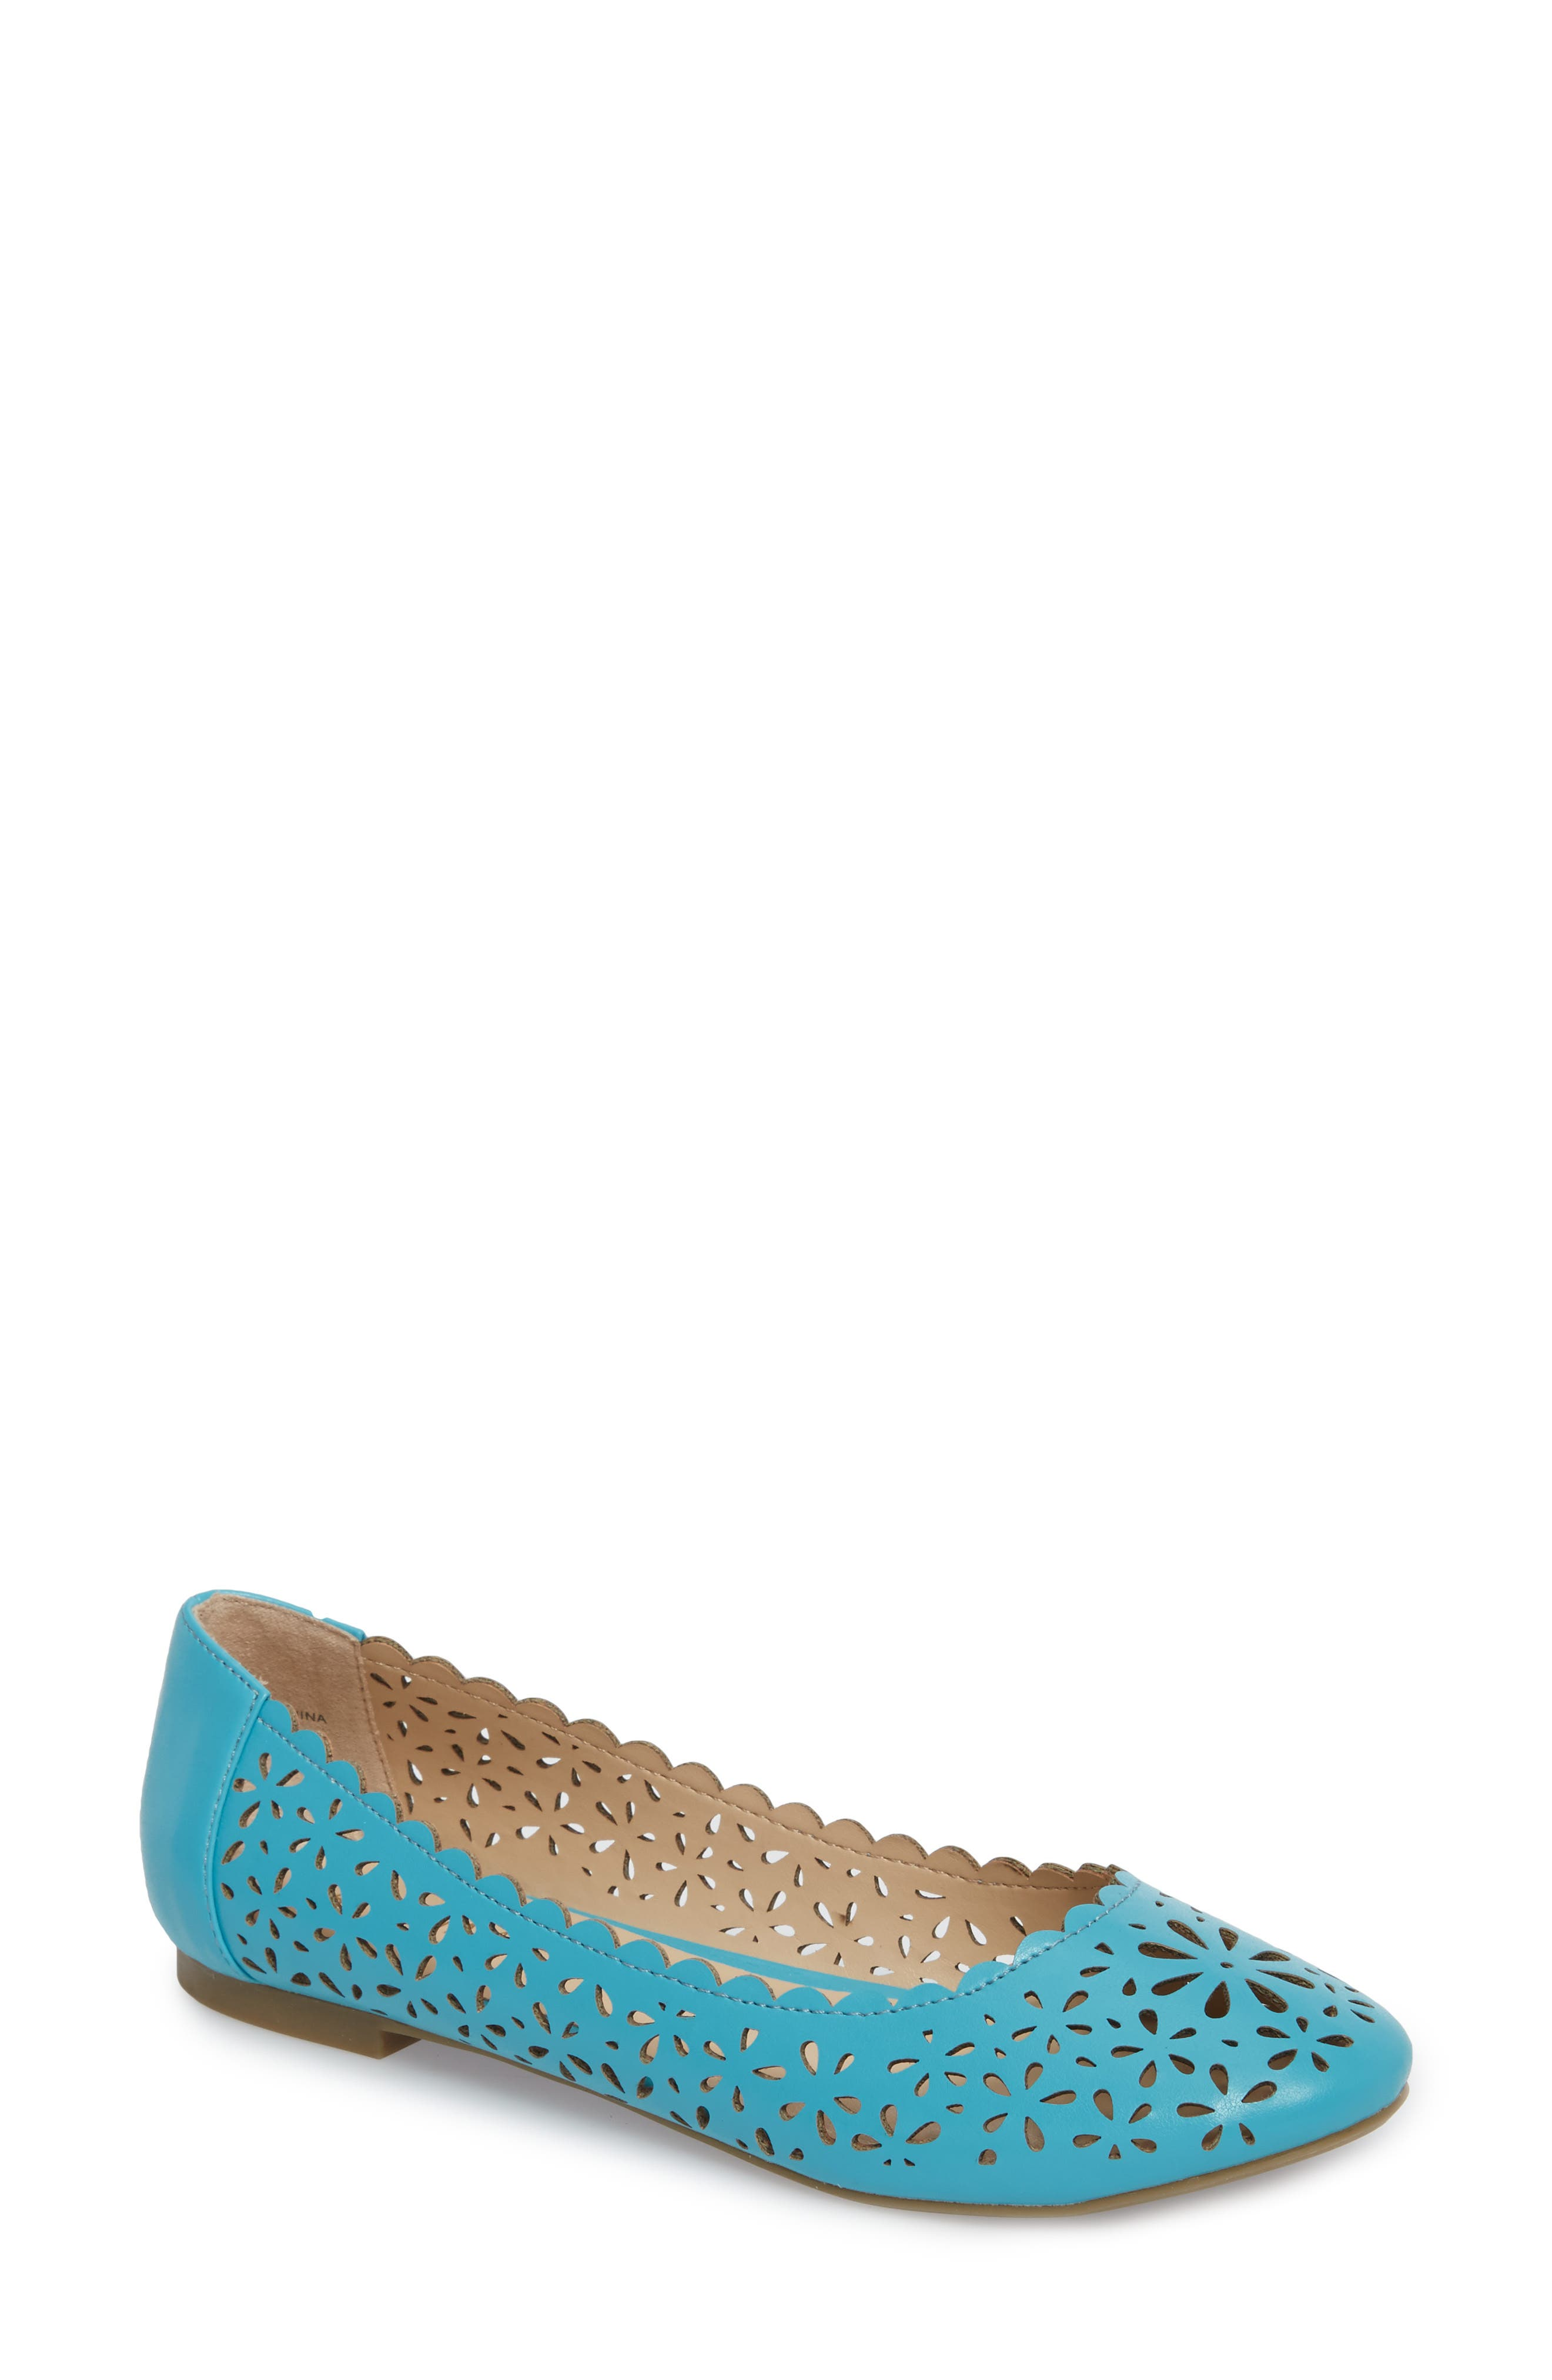 Annora Perforated Flat,                         Main,                         color, Teal Fabric